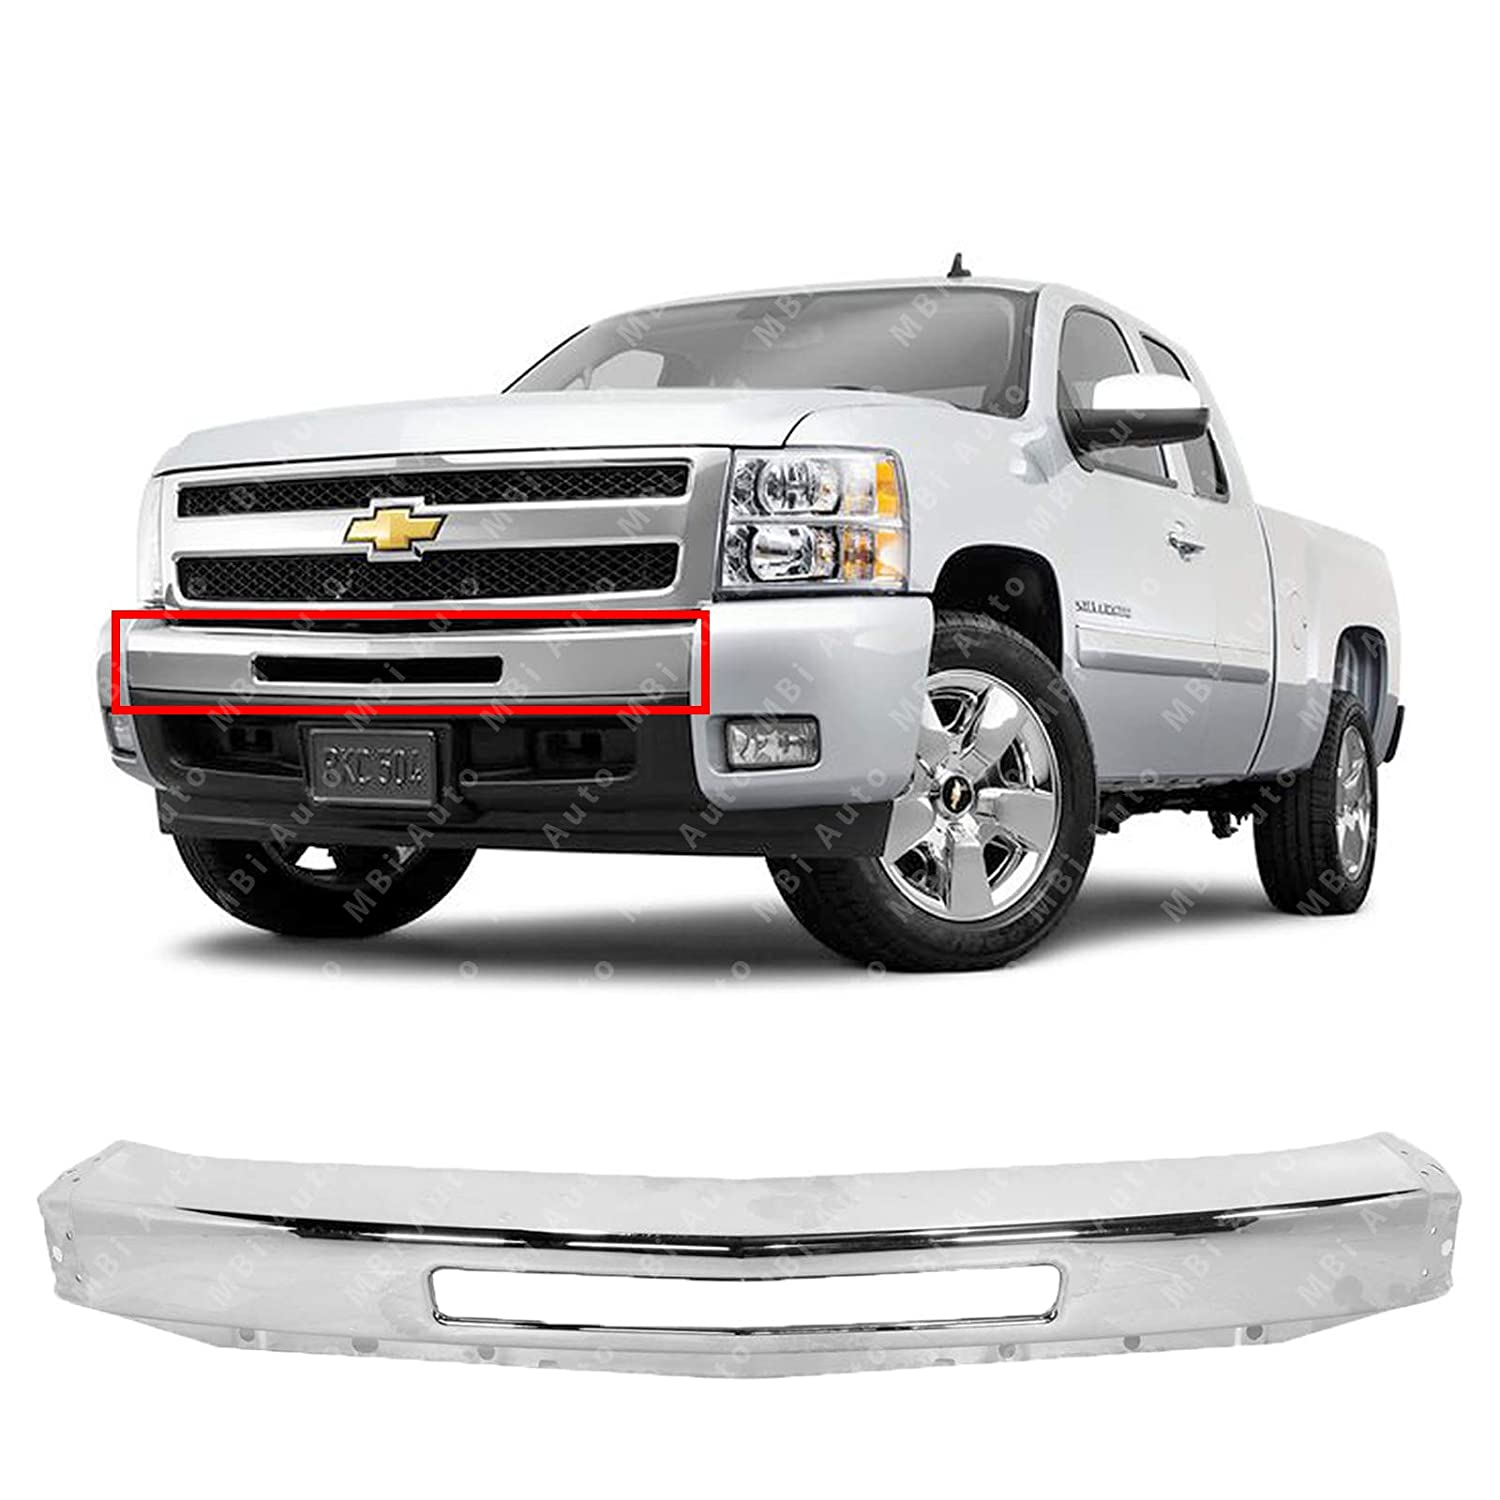 Mbi Auto Chrome Steel Front Bumper Impact Face Bar For 2007 2008 2009 2010 2011 2012 2013 Chevy Silverado 1500 Pickup 07 13 Gm1002831